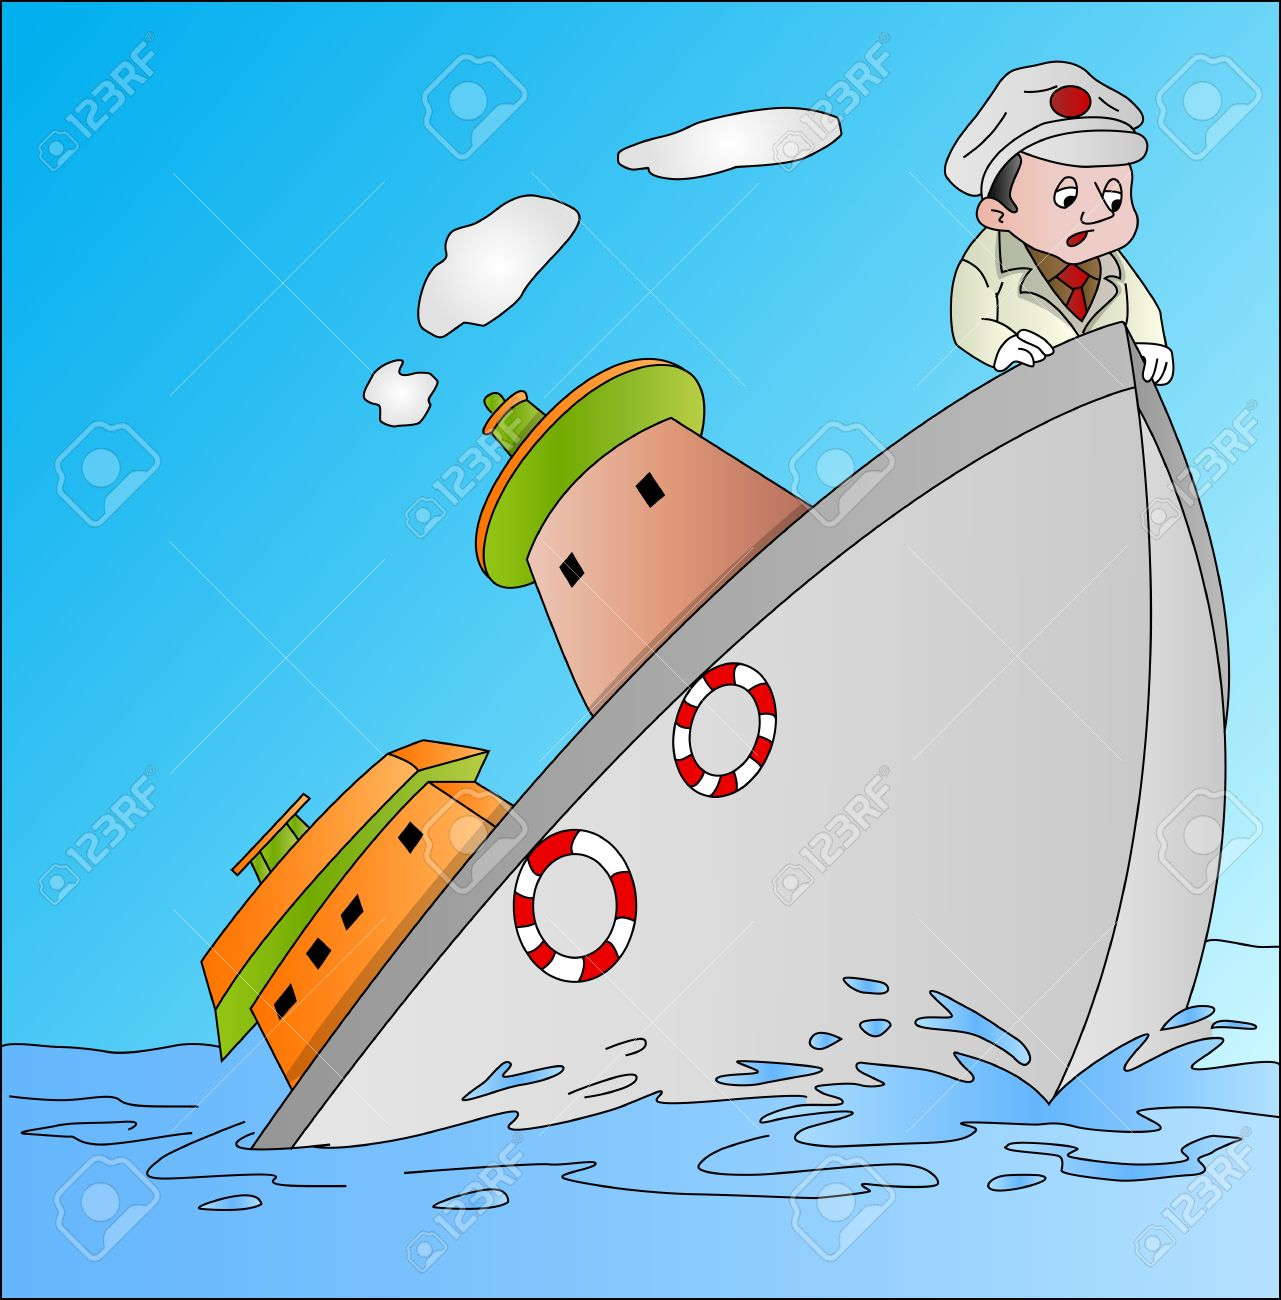 Ship Sinking With Captain, Vector Illustration Royalty Free.